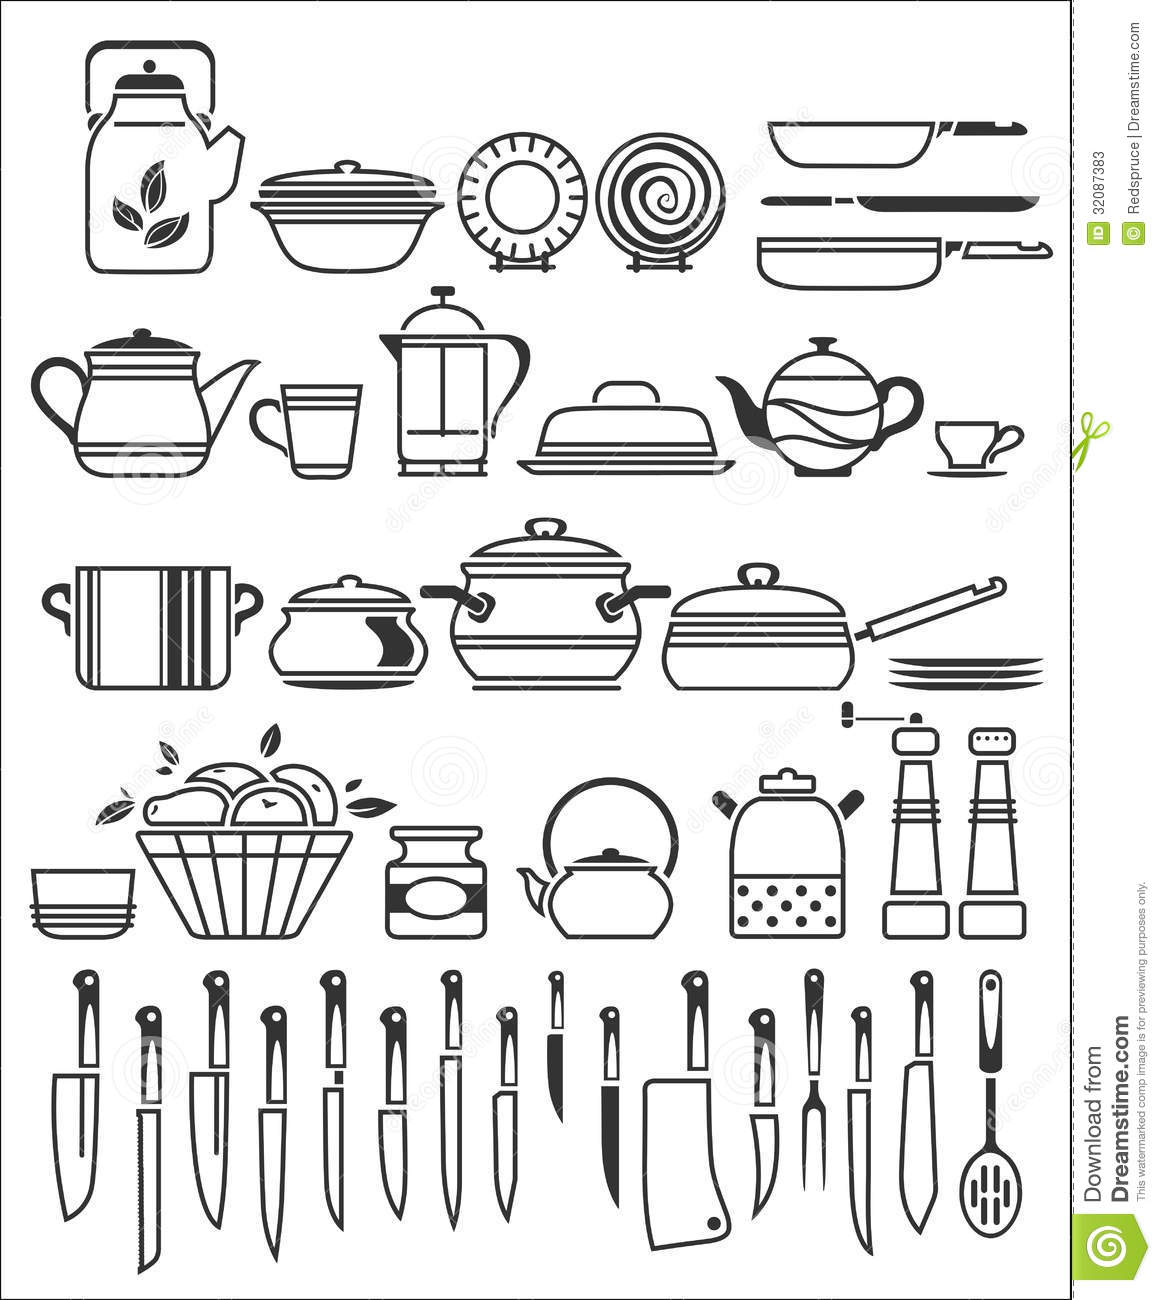 kitchen tools and utensils vector illustration stock photos image 32087383. Black Bedroom Furniture Sets. Home Design Ideas